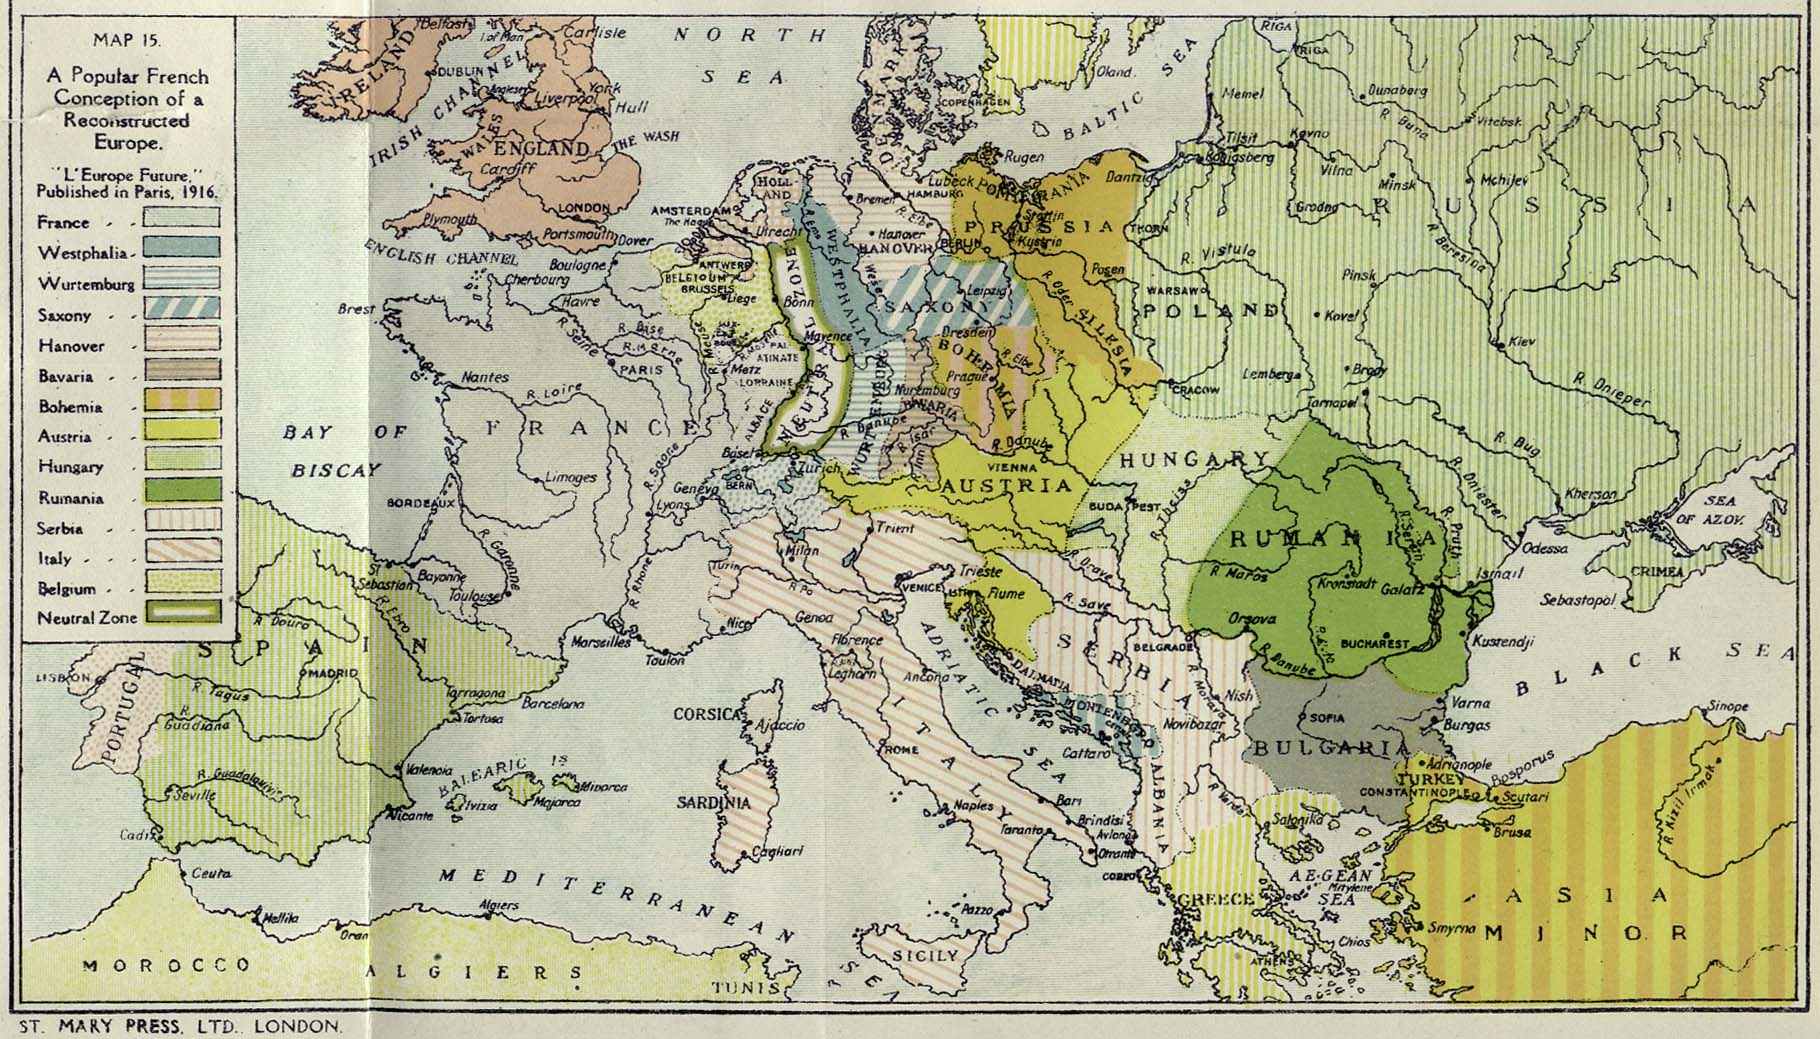 France On The Map Of Europe.A French Map Of Reconstructed Europe Published In 1916 World War